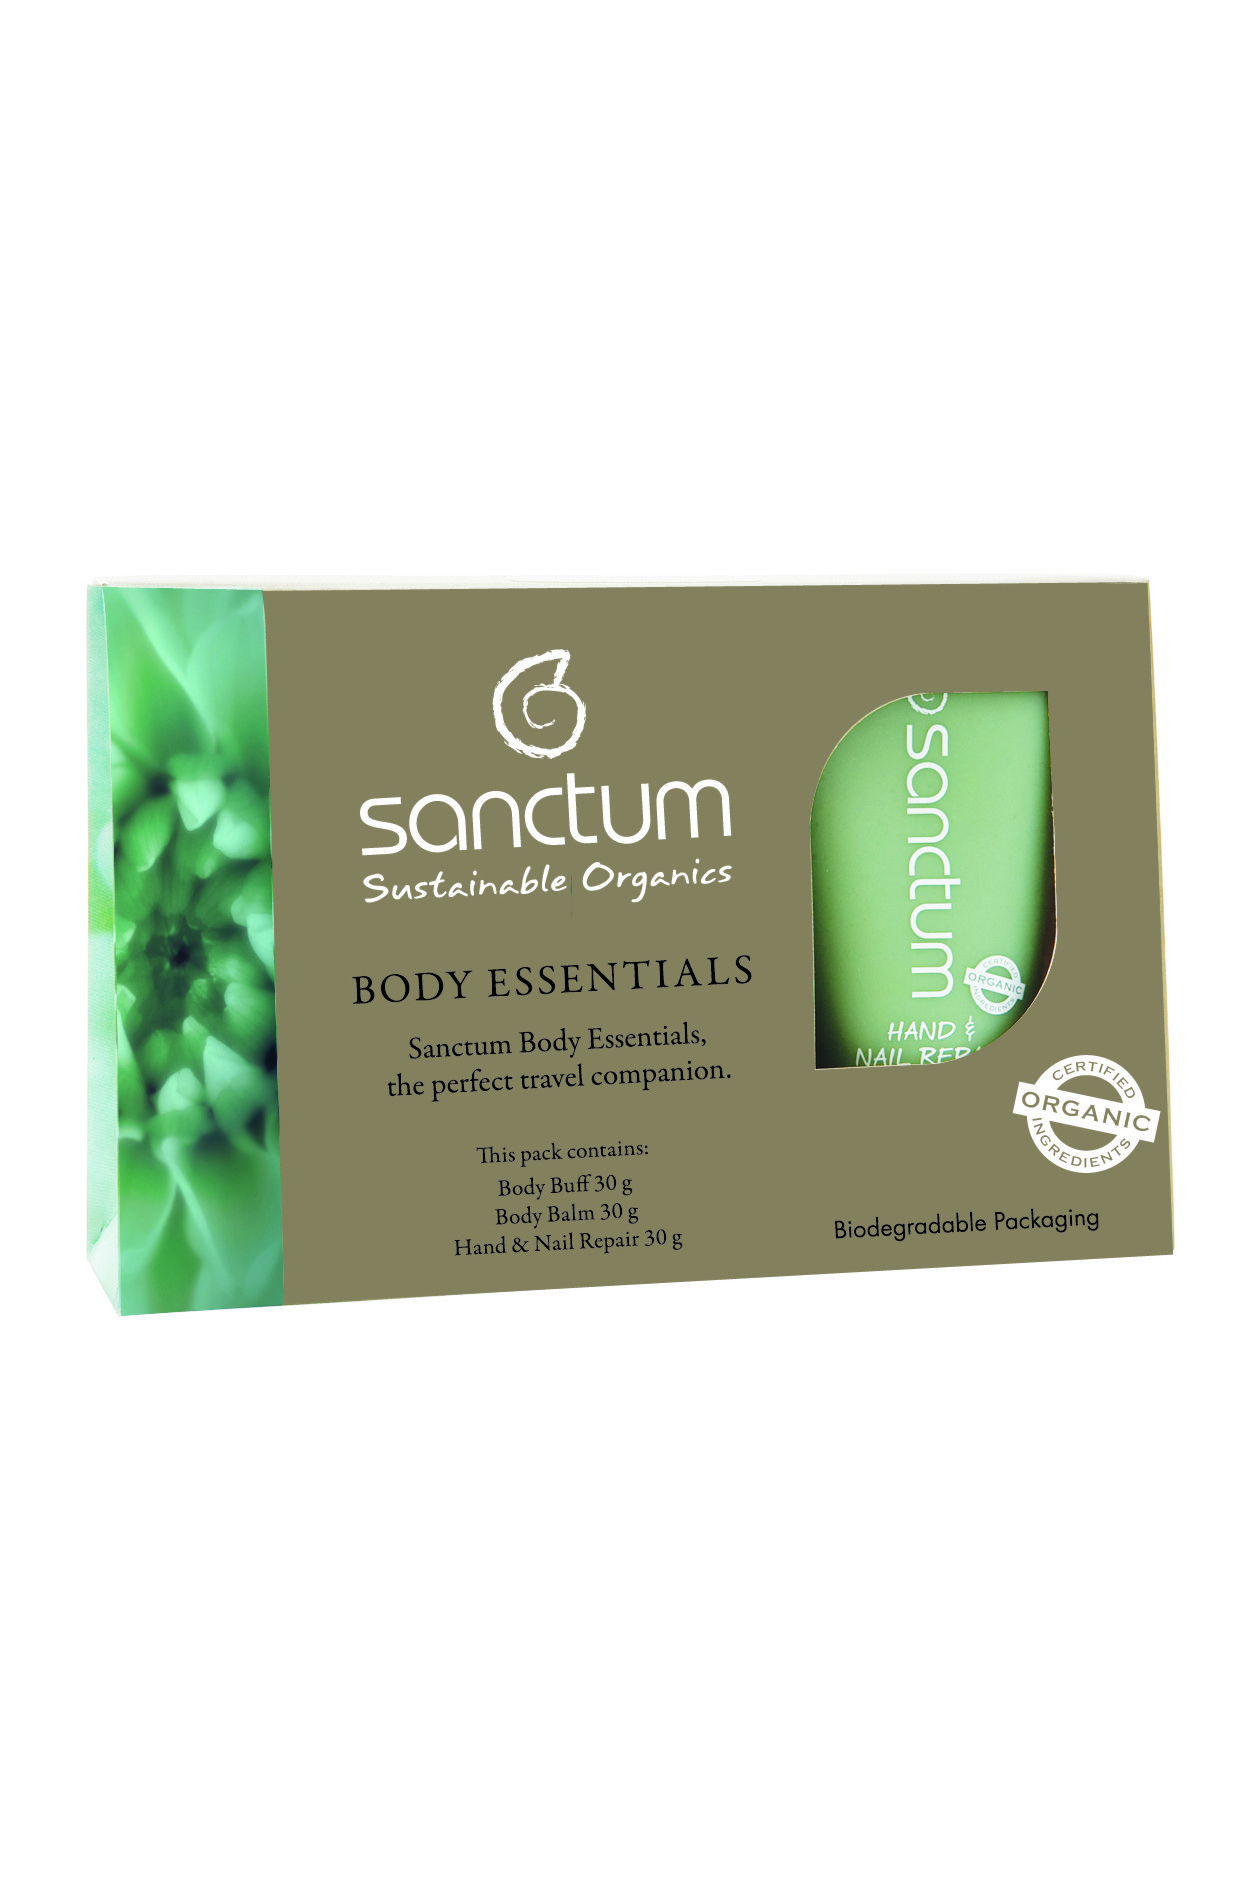 Sanctum Body Essentials Travel Pack - 3 x 30ml